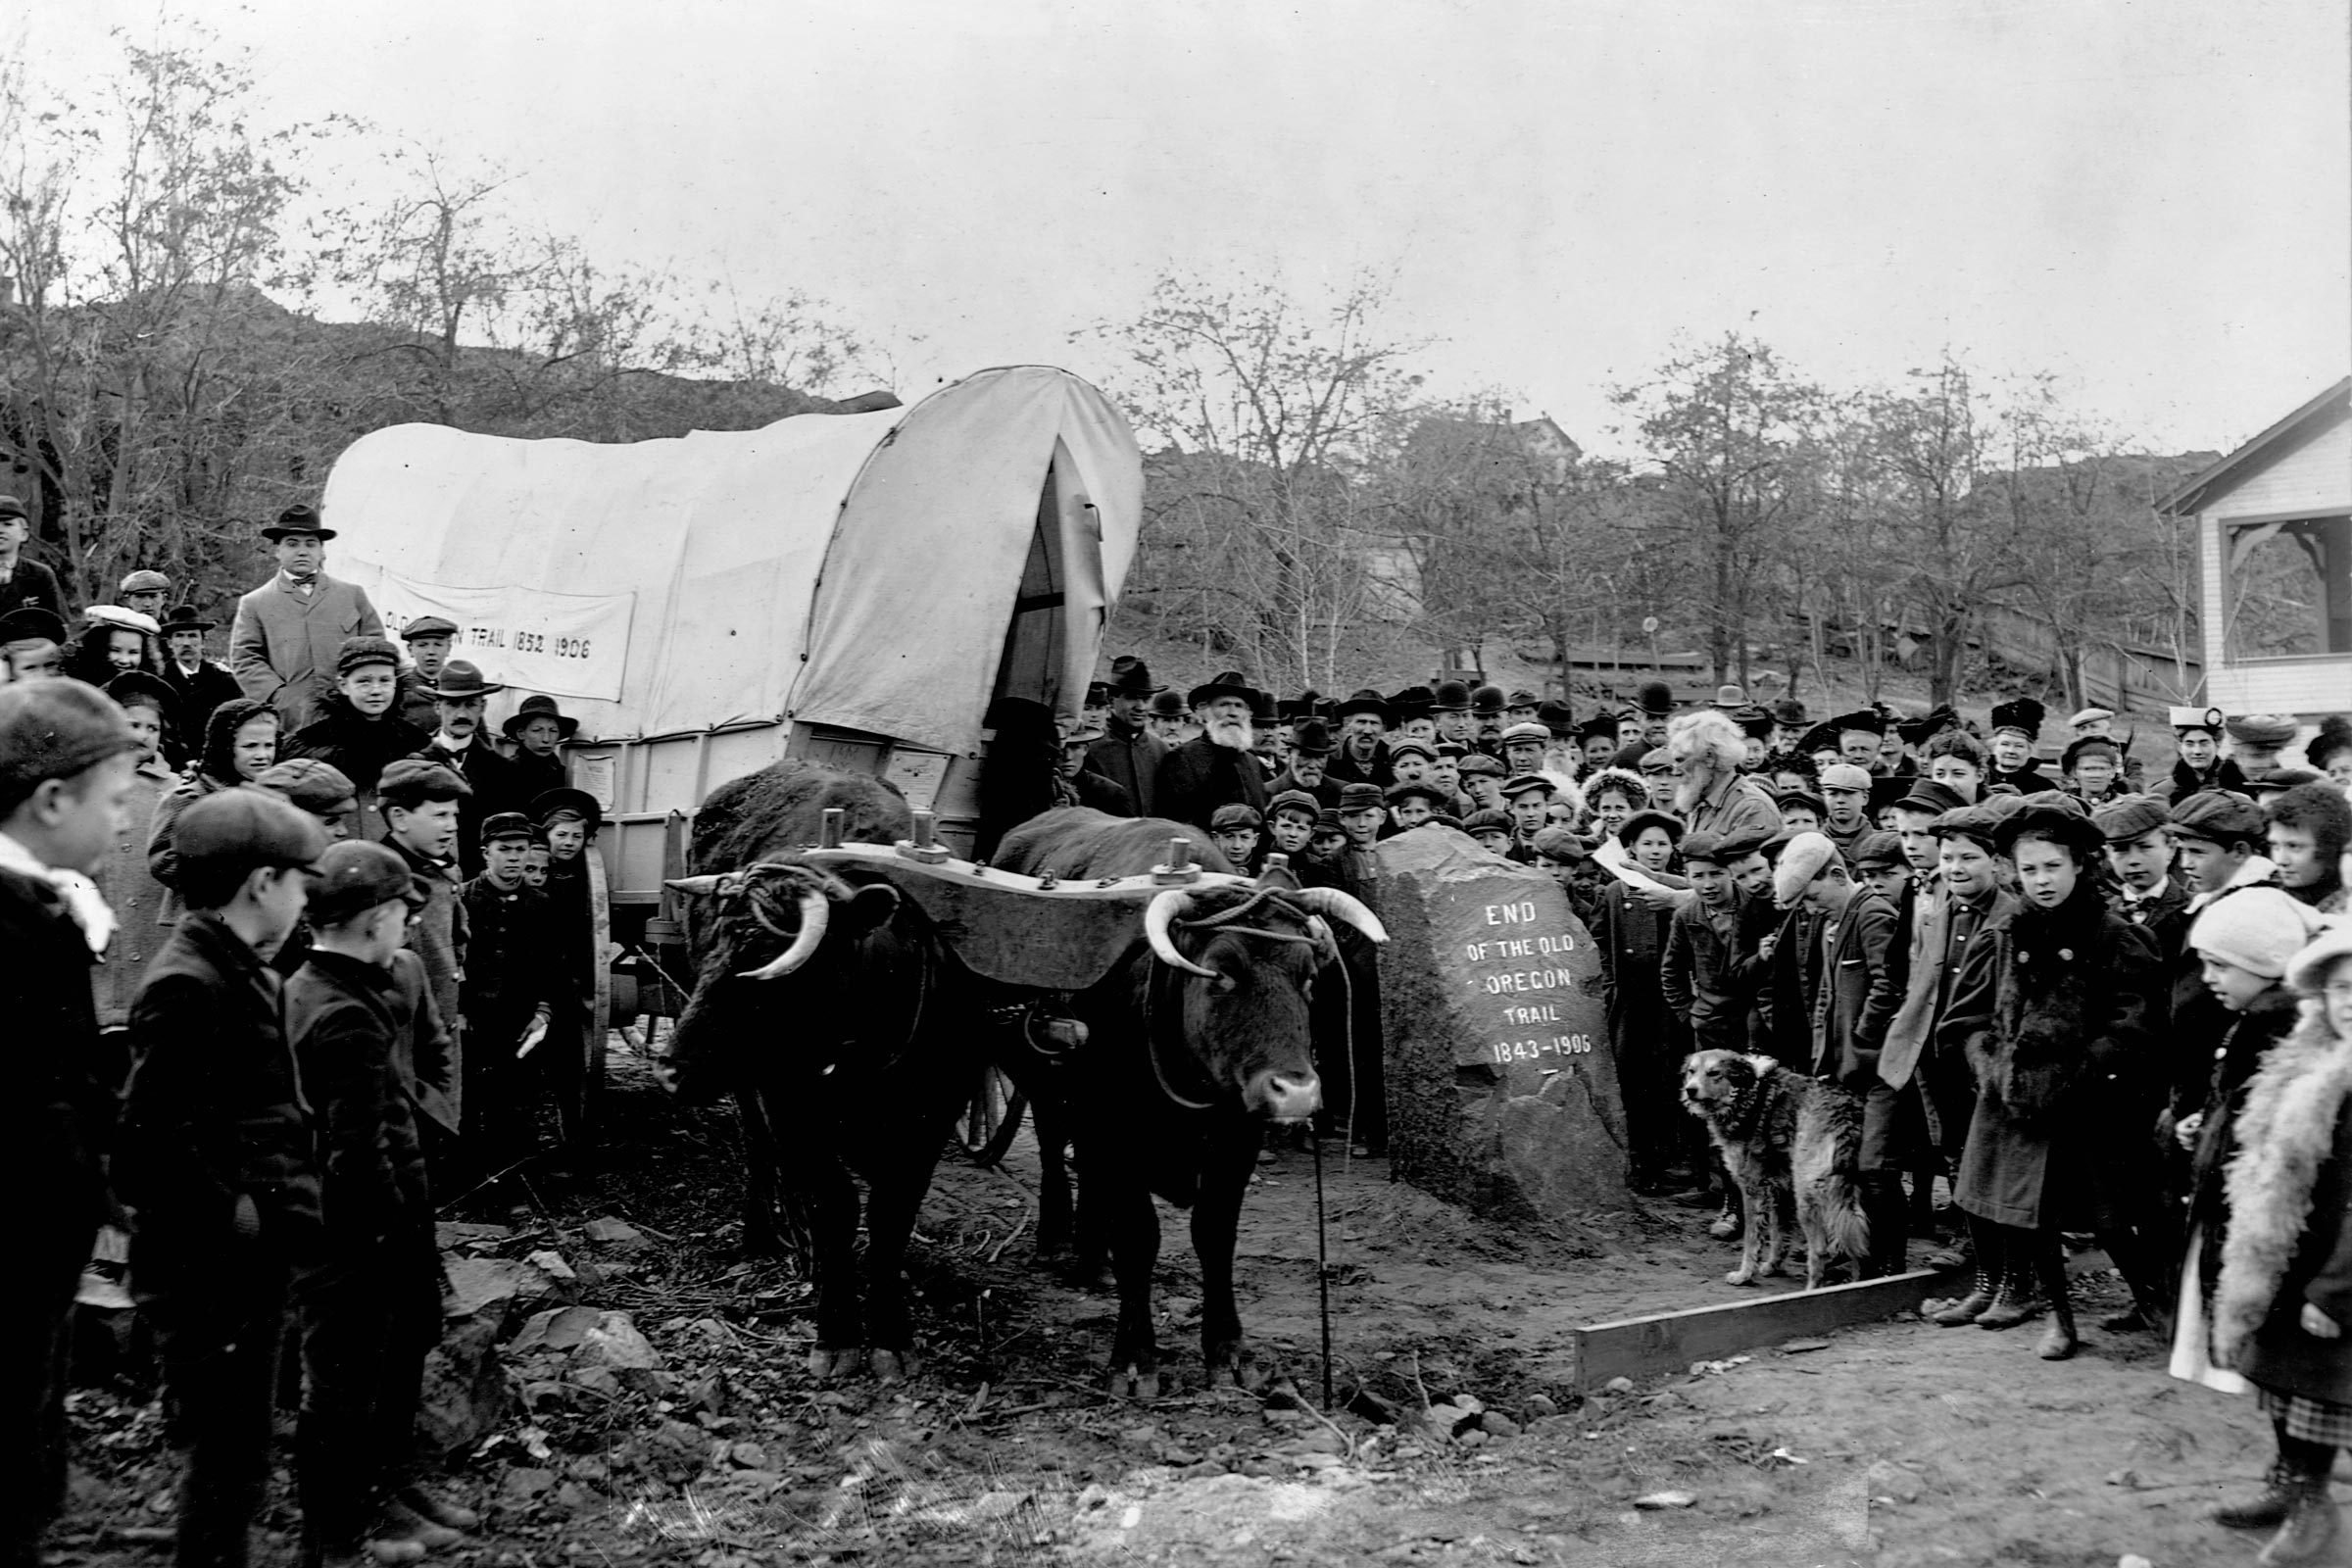 A crowd of the descendants of Oregon Trail settlers gathers together in The Dalles, Oregon, for a celebration at the inscribed stone that marks the trail's end. A covered wagon pulled by a team of oxen completes the occasion.